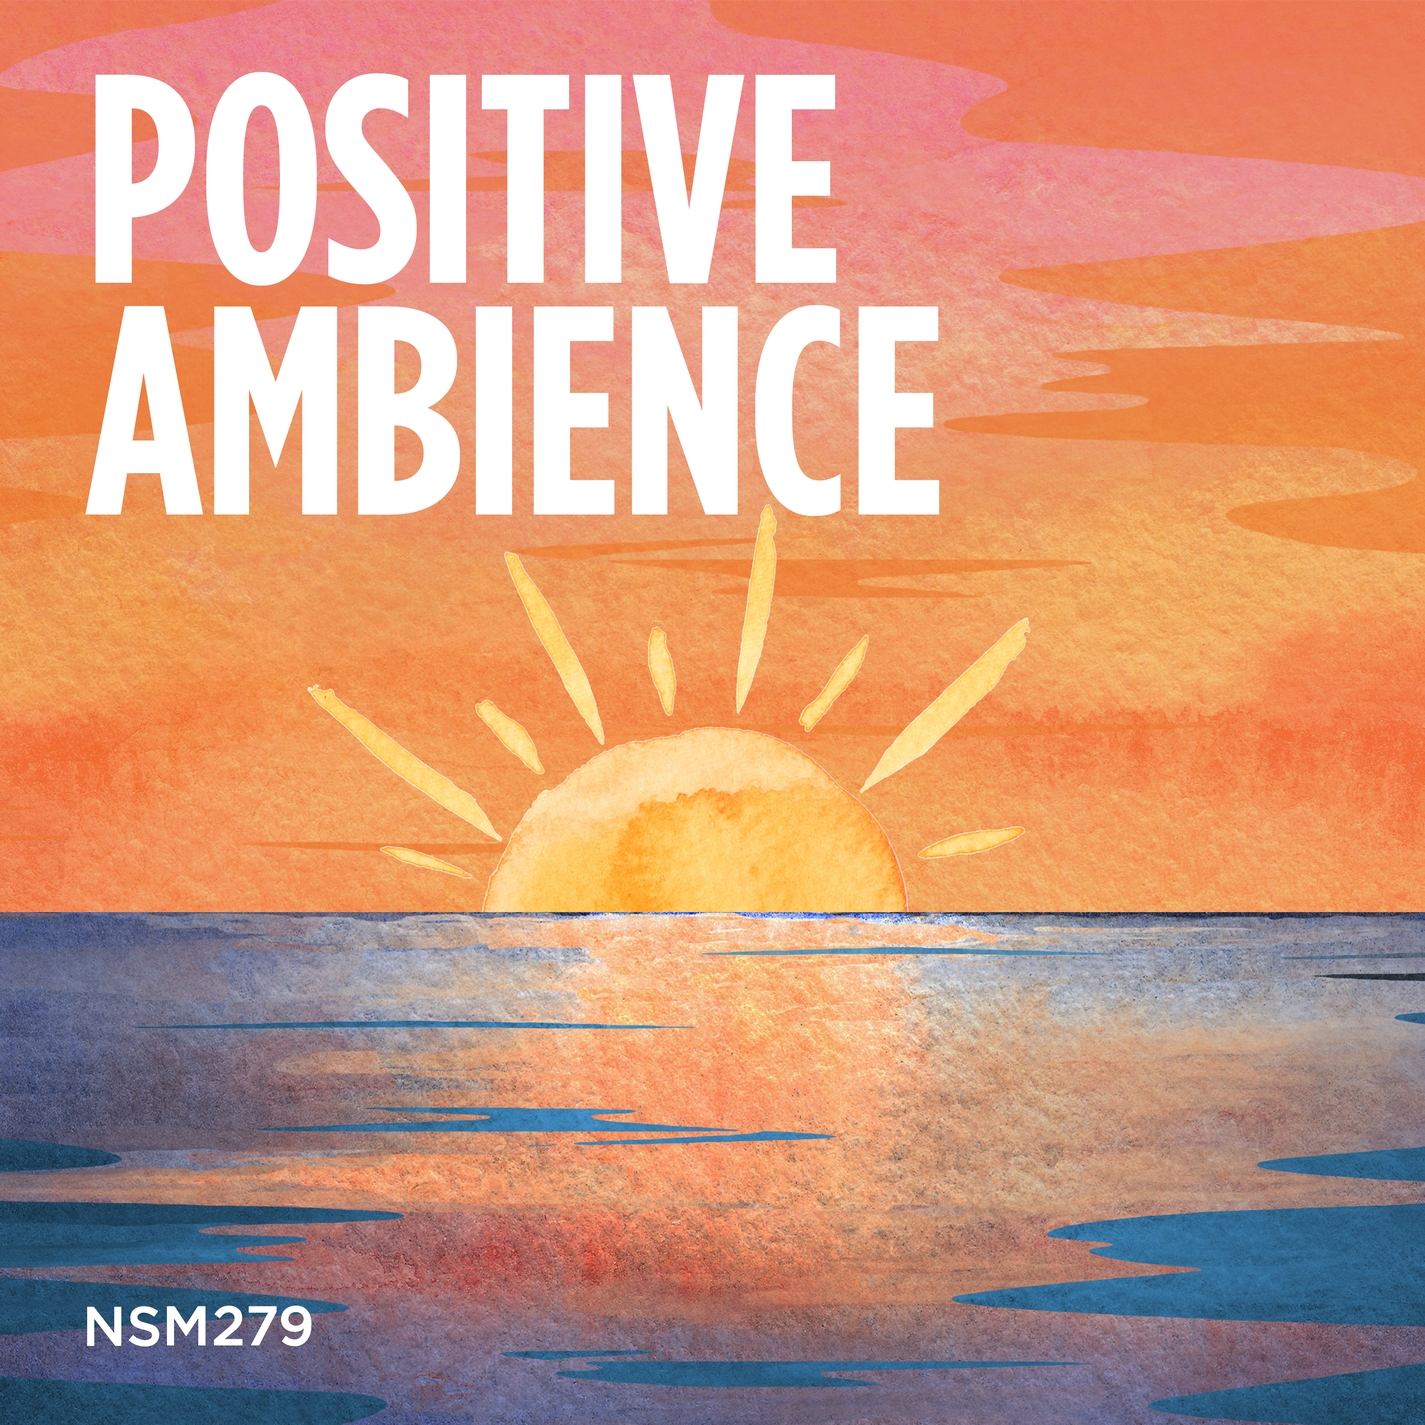 Positive Ambience